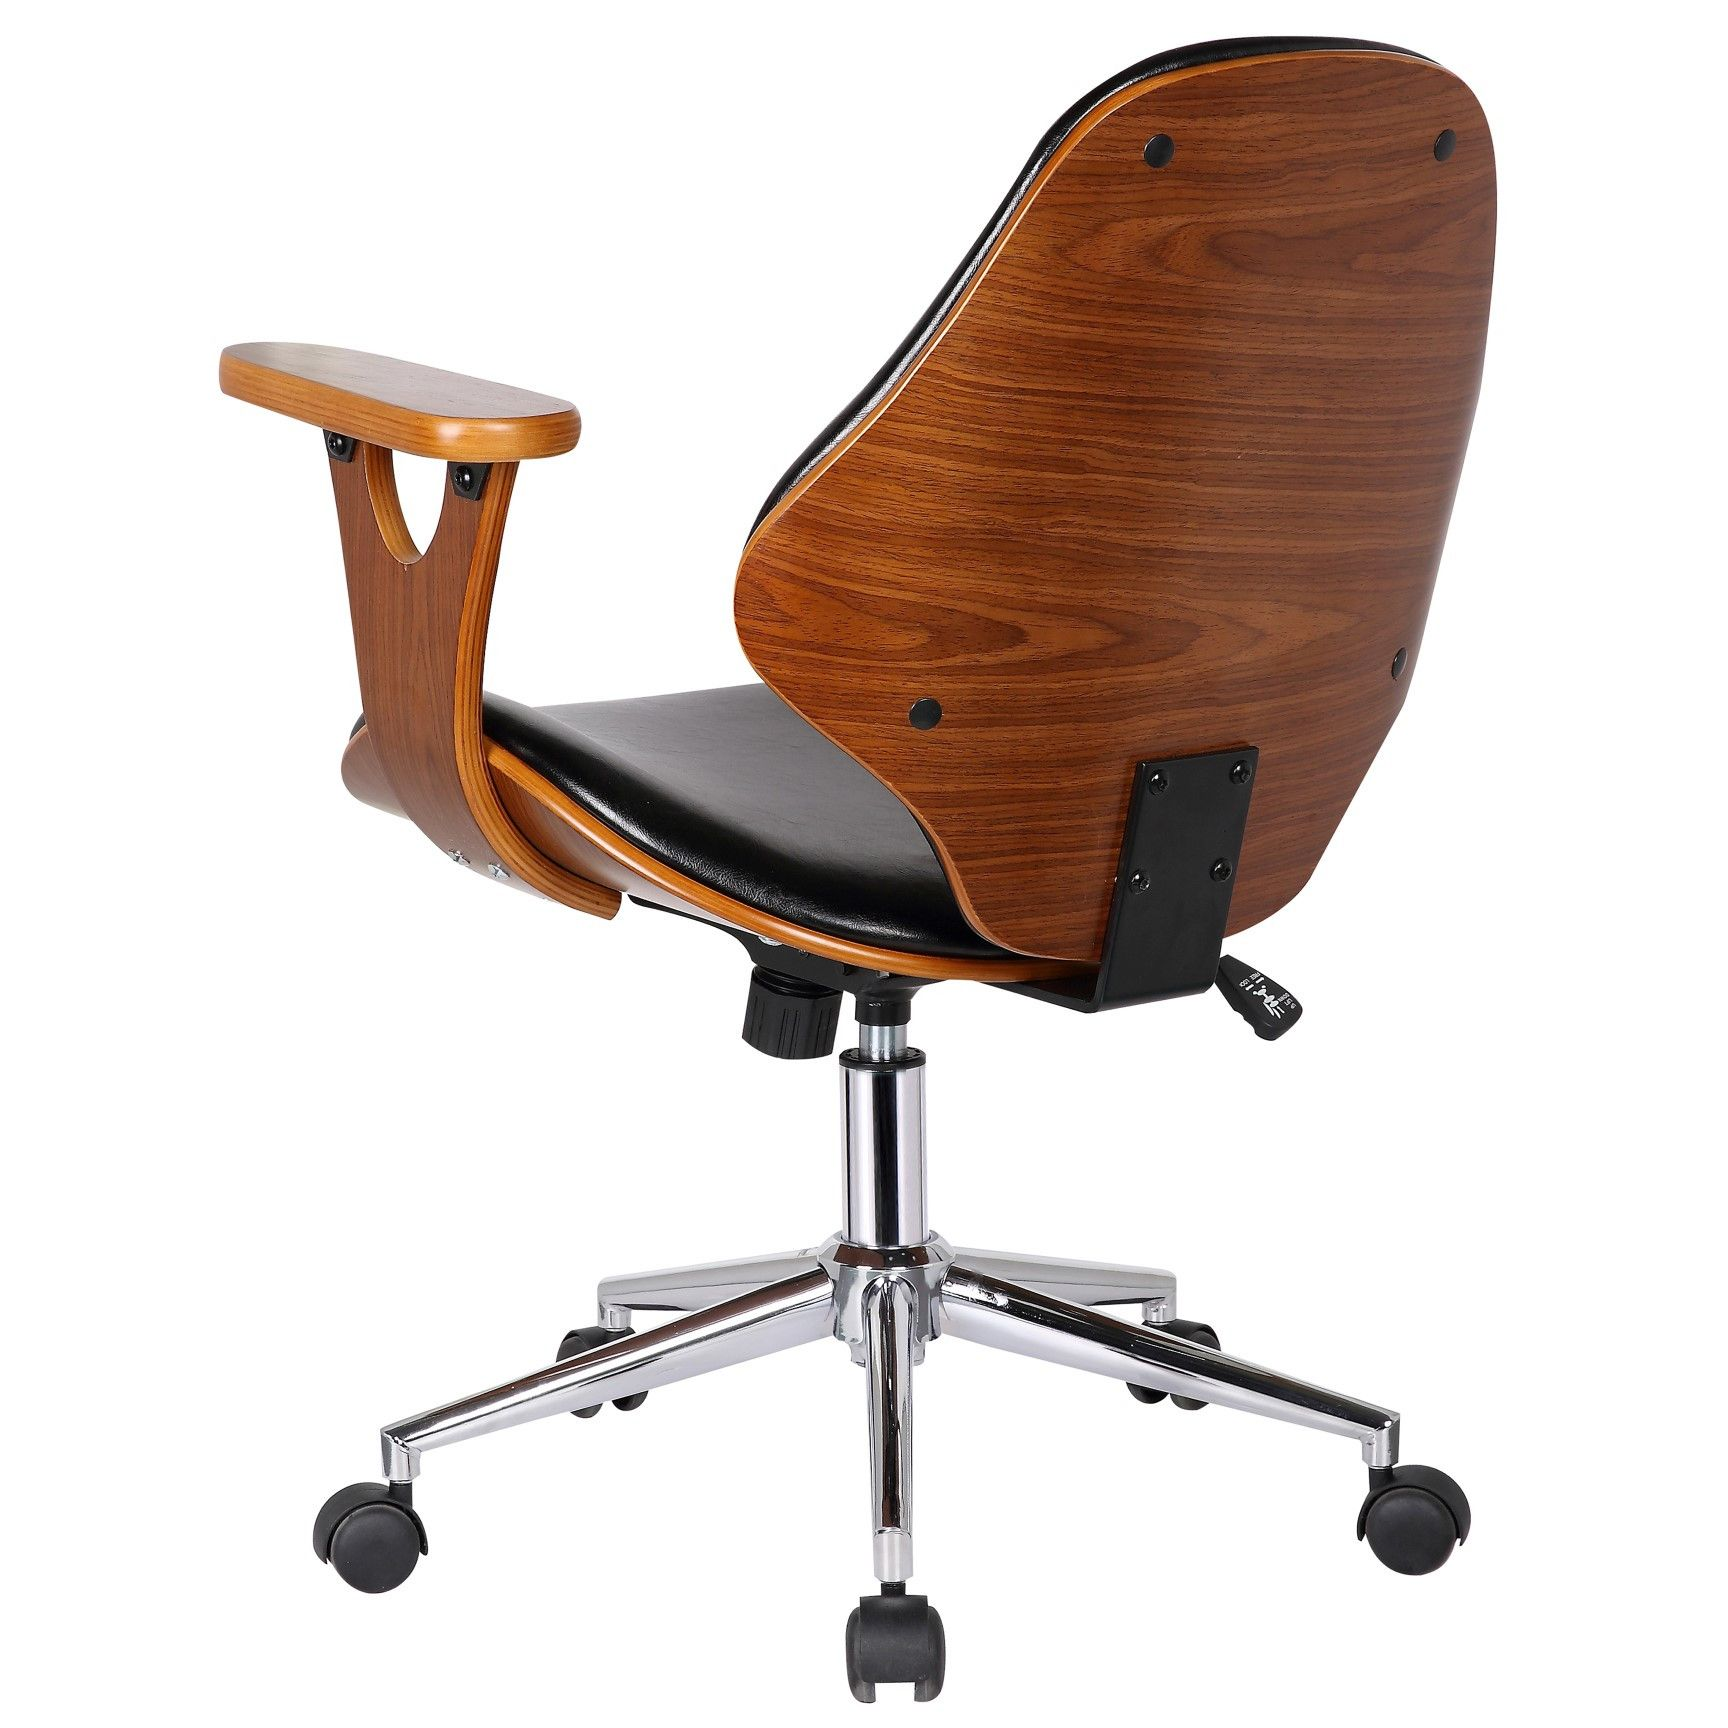 Shop Wayfair for Wood Office Chairs to match every style